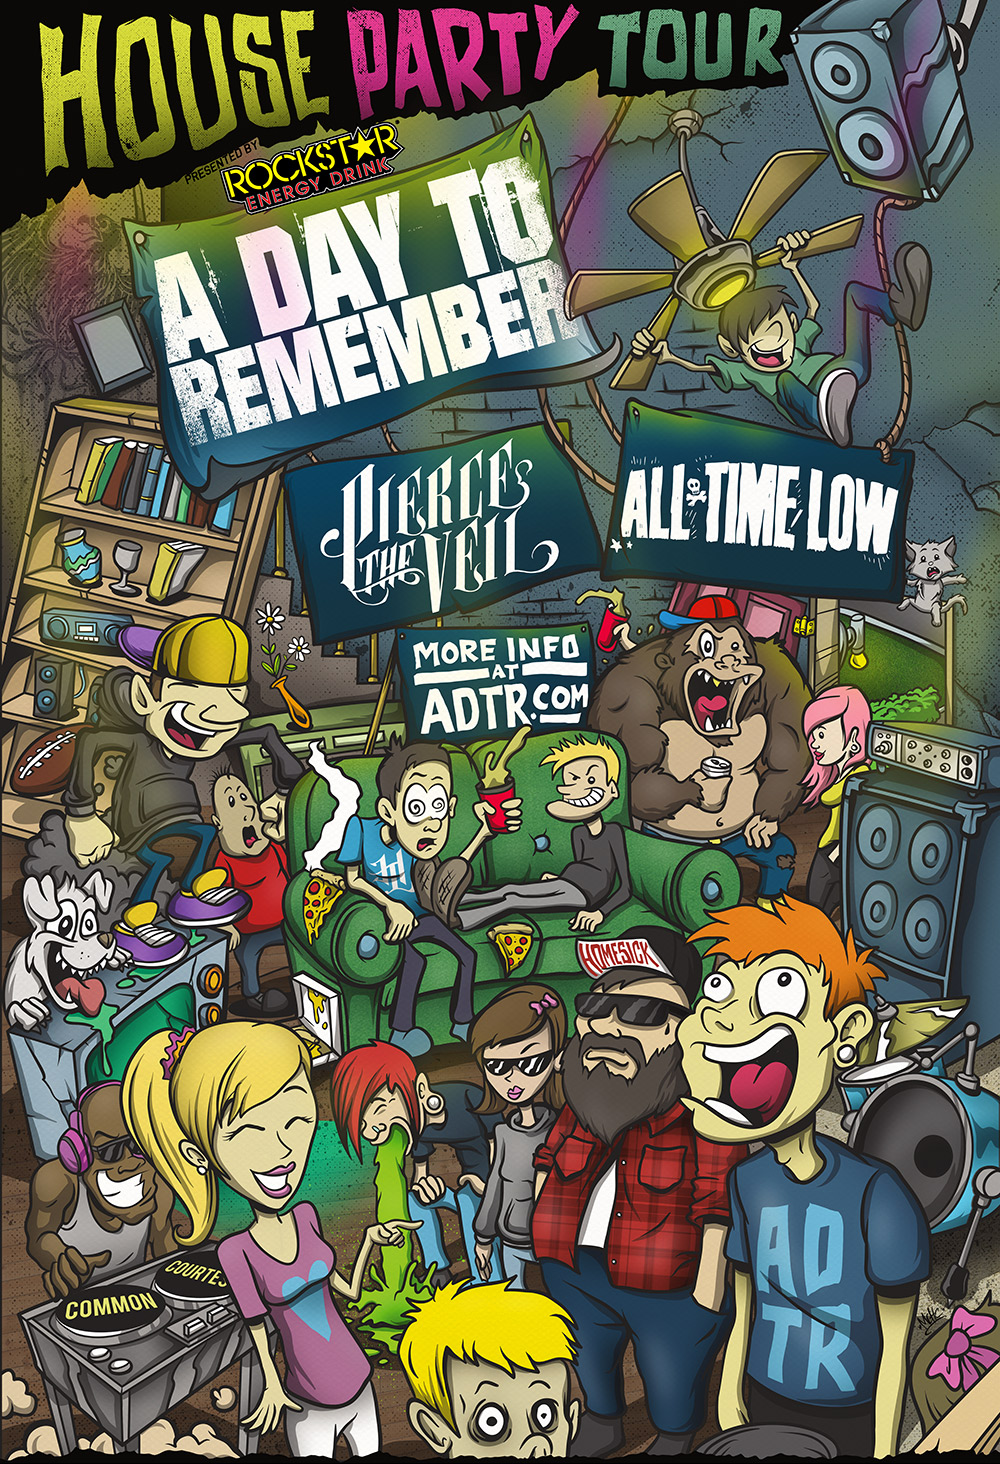 ADTR house party tour